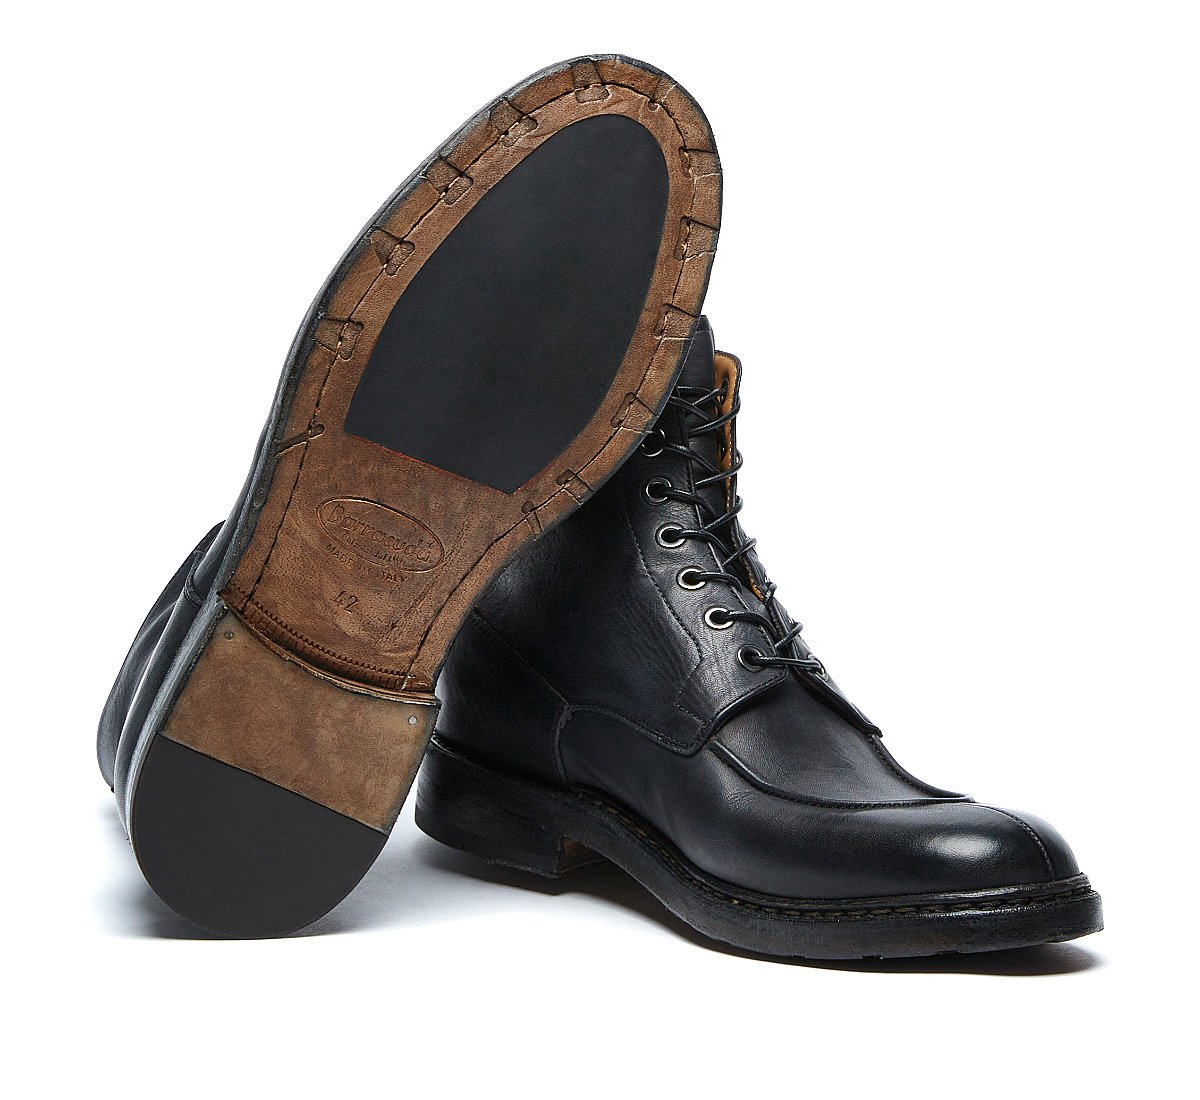 Barracuda vintage commando boots in luxury calf leather